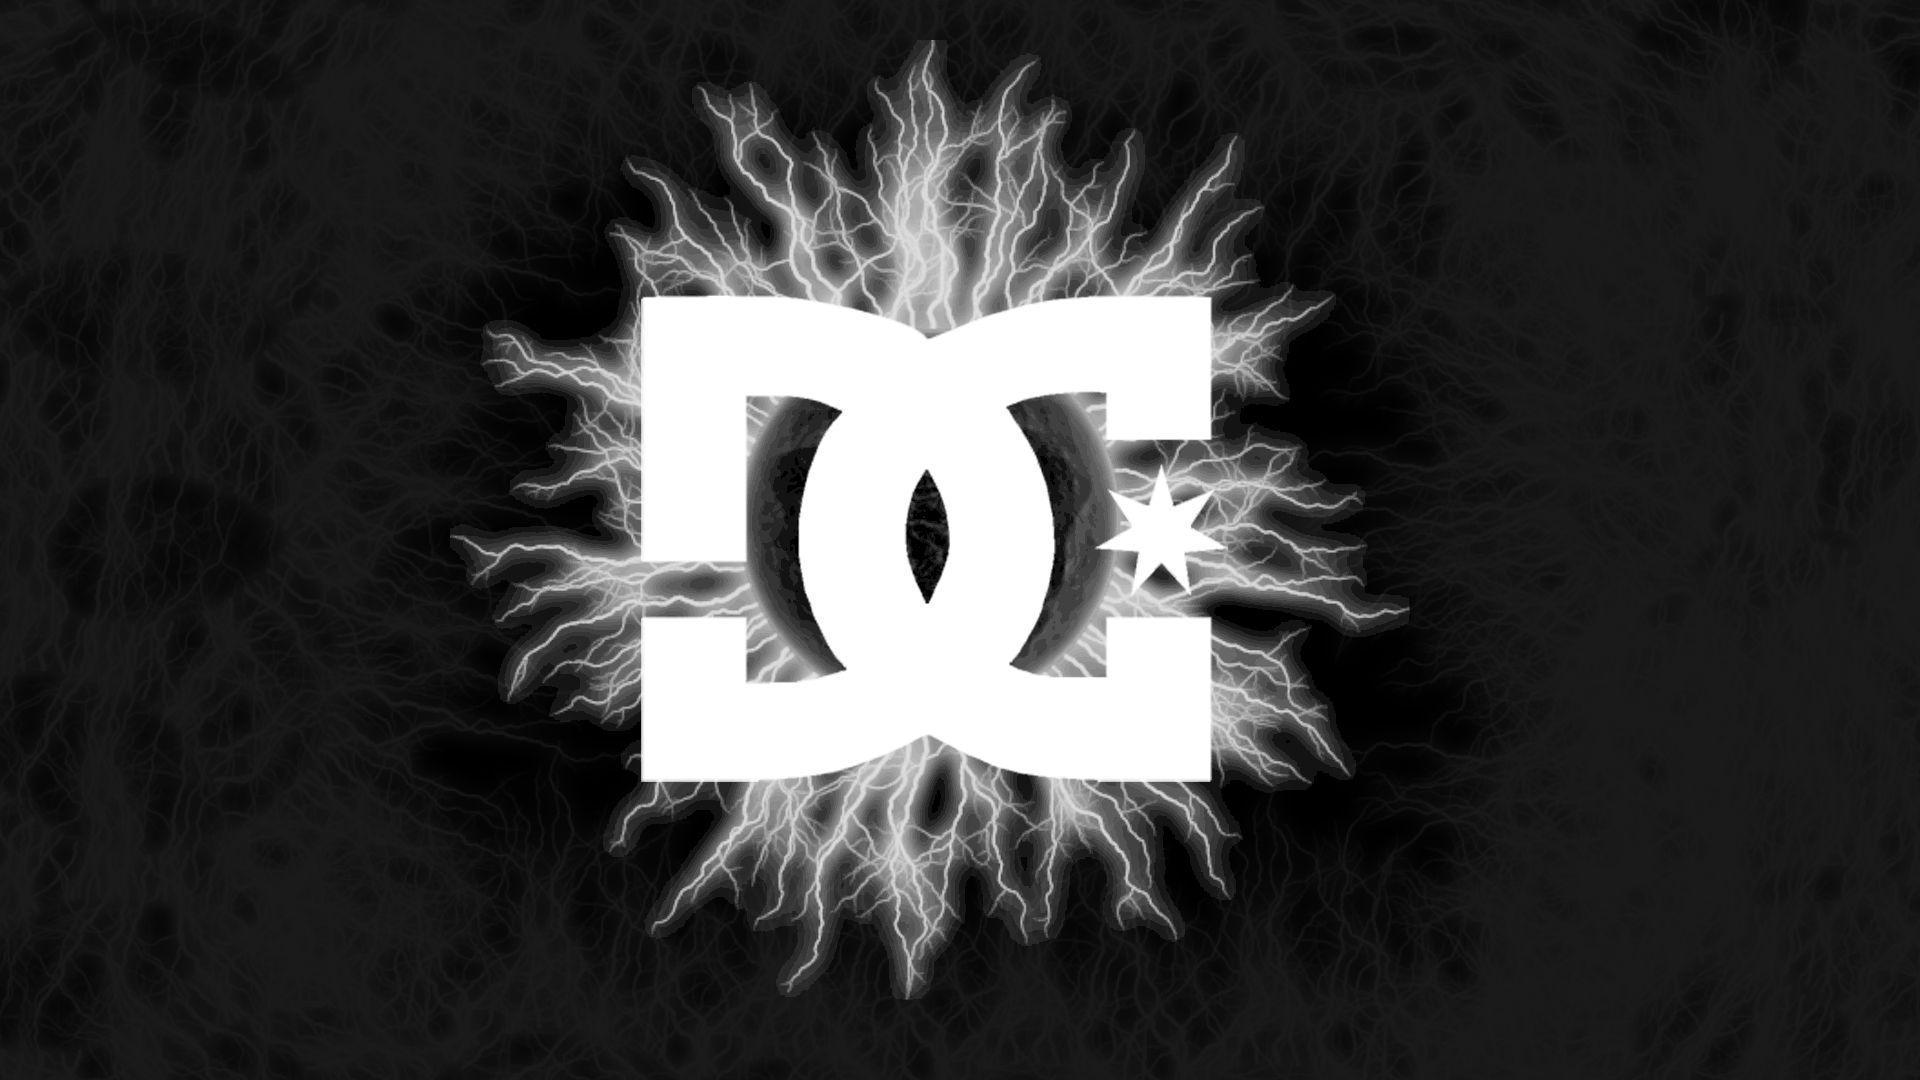 hd wallpapers dc shoes logo 1600 x 1200 77 kb jpeg hd wallpapers